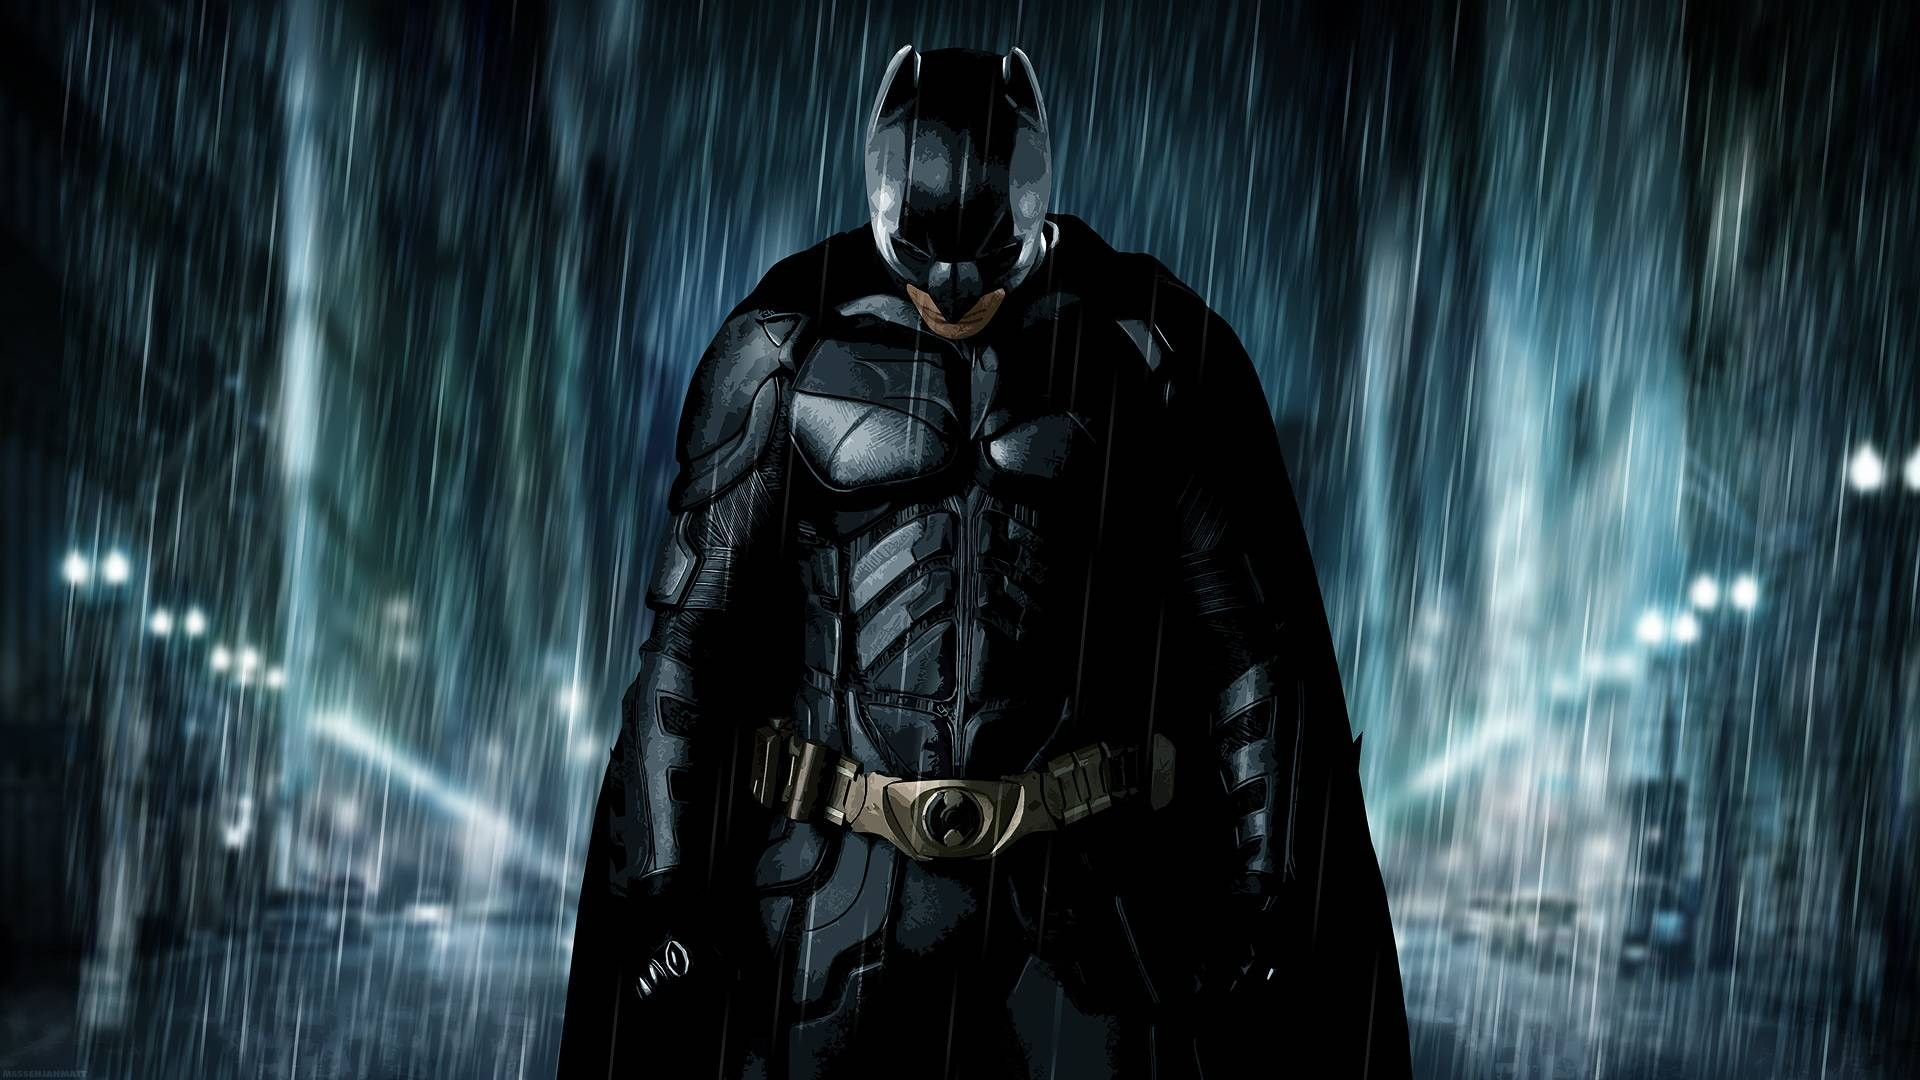 1920x1080 Batman HD Wallpapers Backgrounds Wallpaper 1920×1200 Batman High Resolution  Wallpapers (47 Wallpapers)